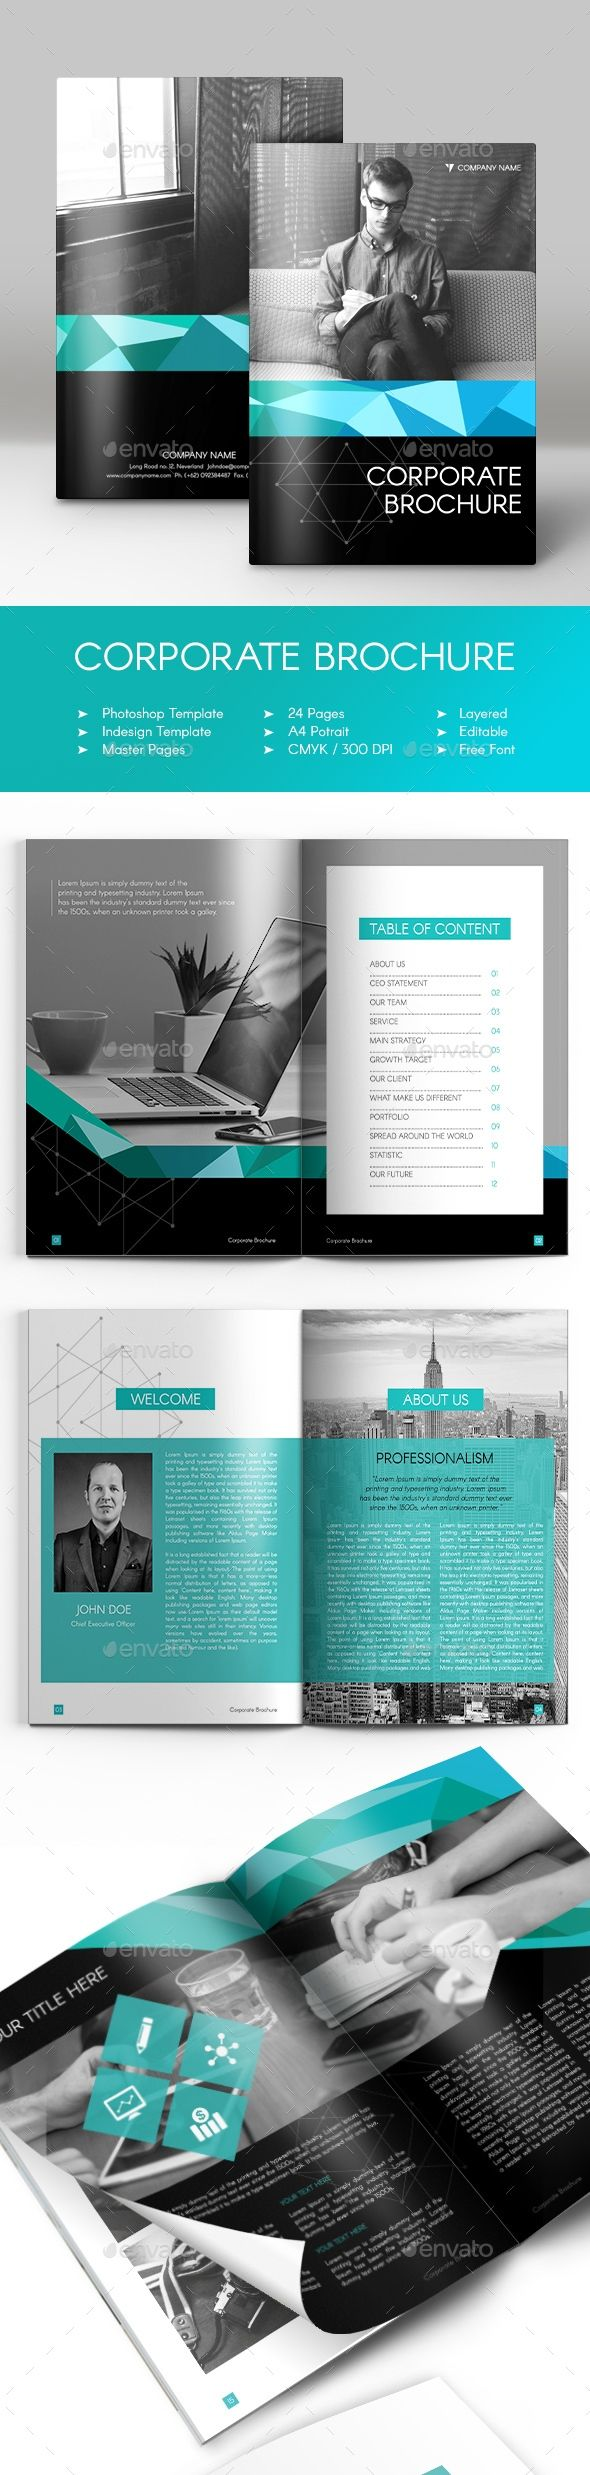 Corporate Brochure Company Profile 6